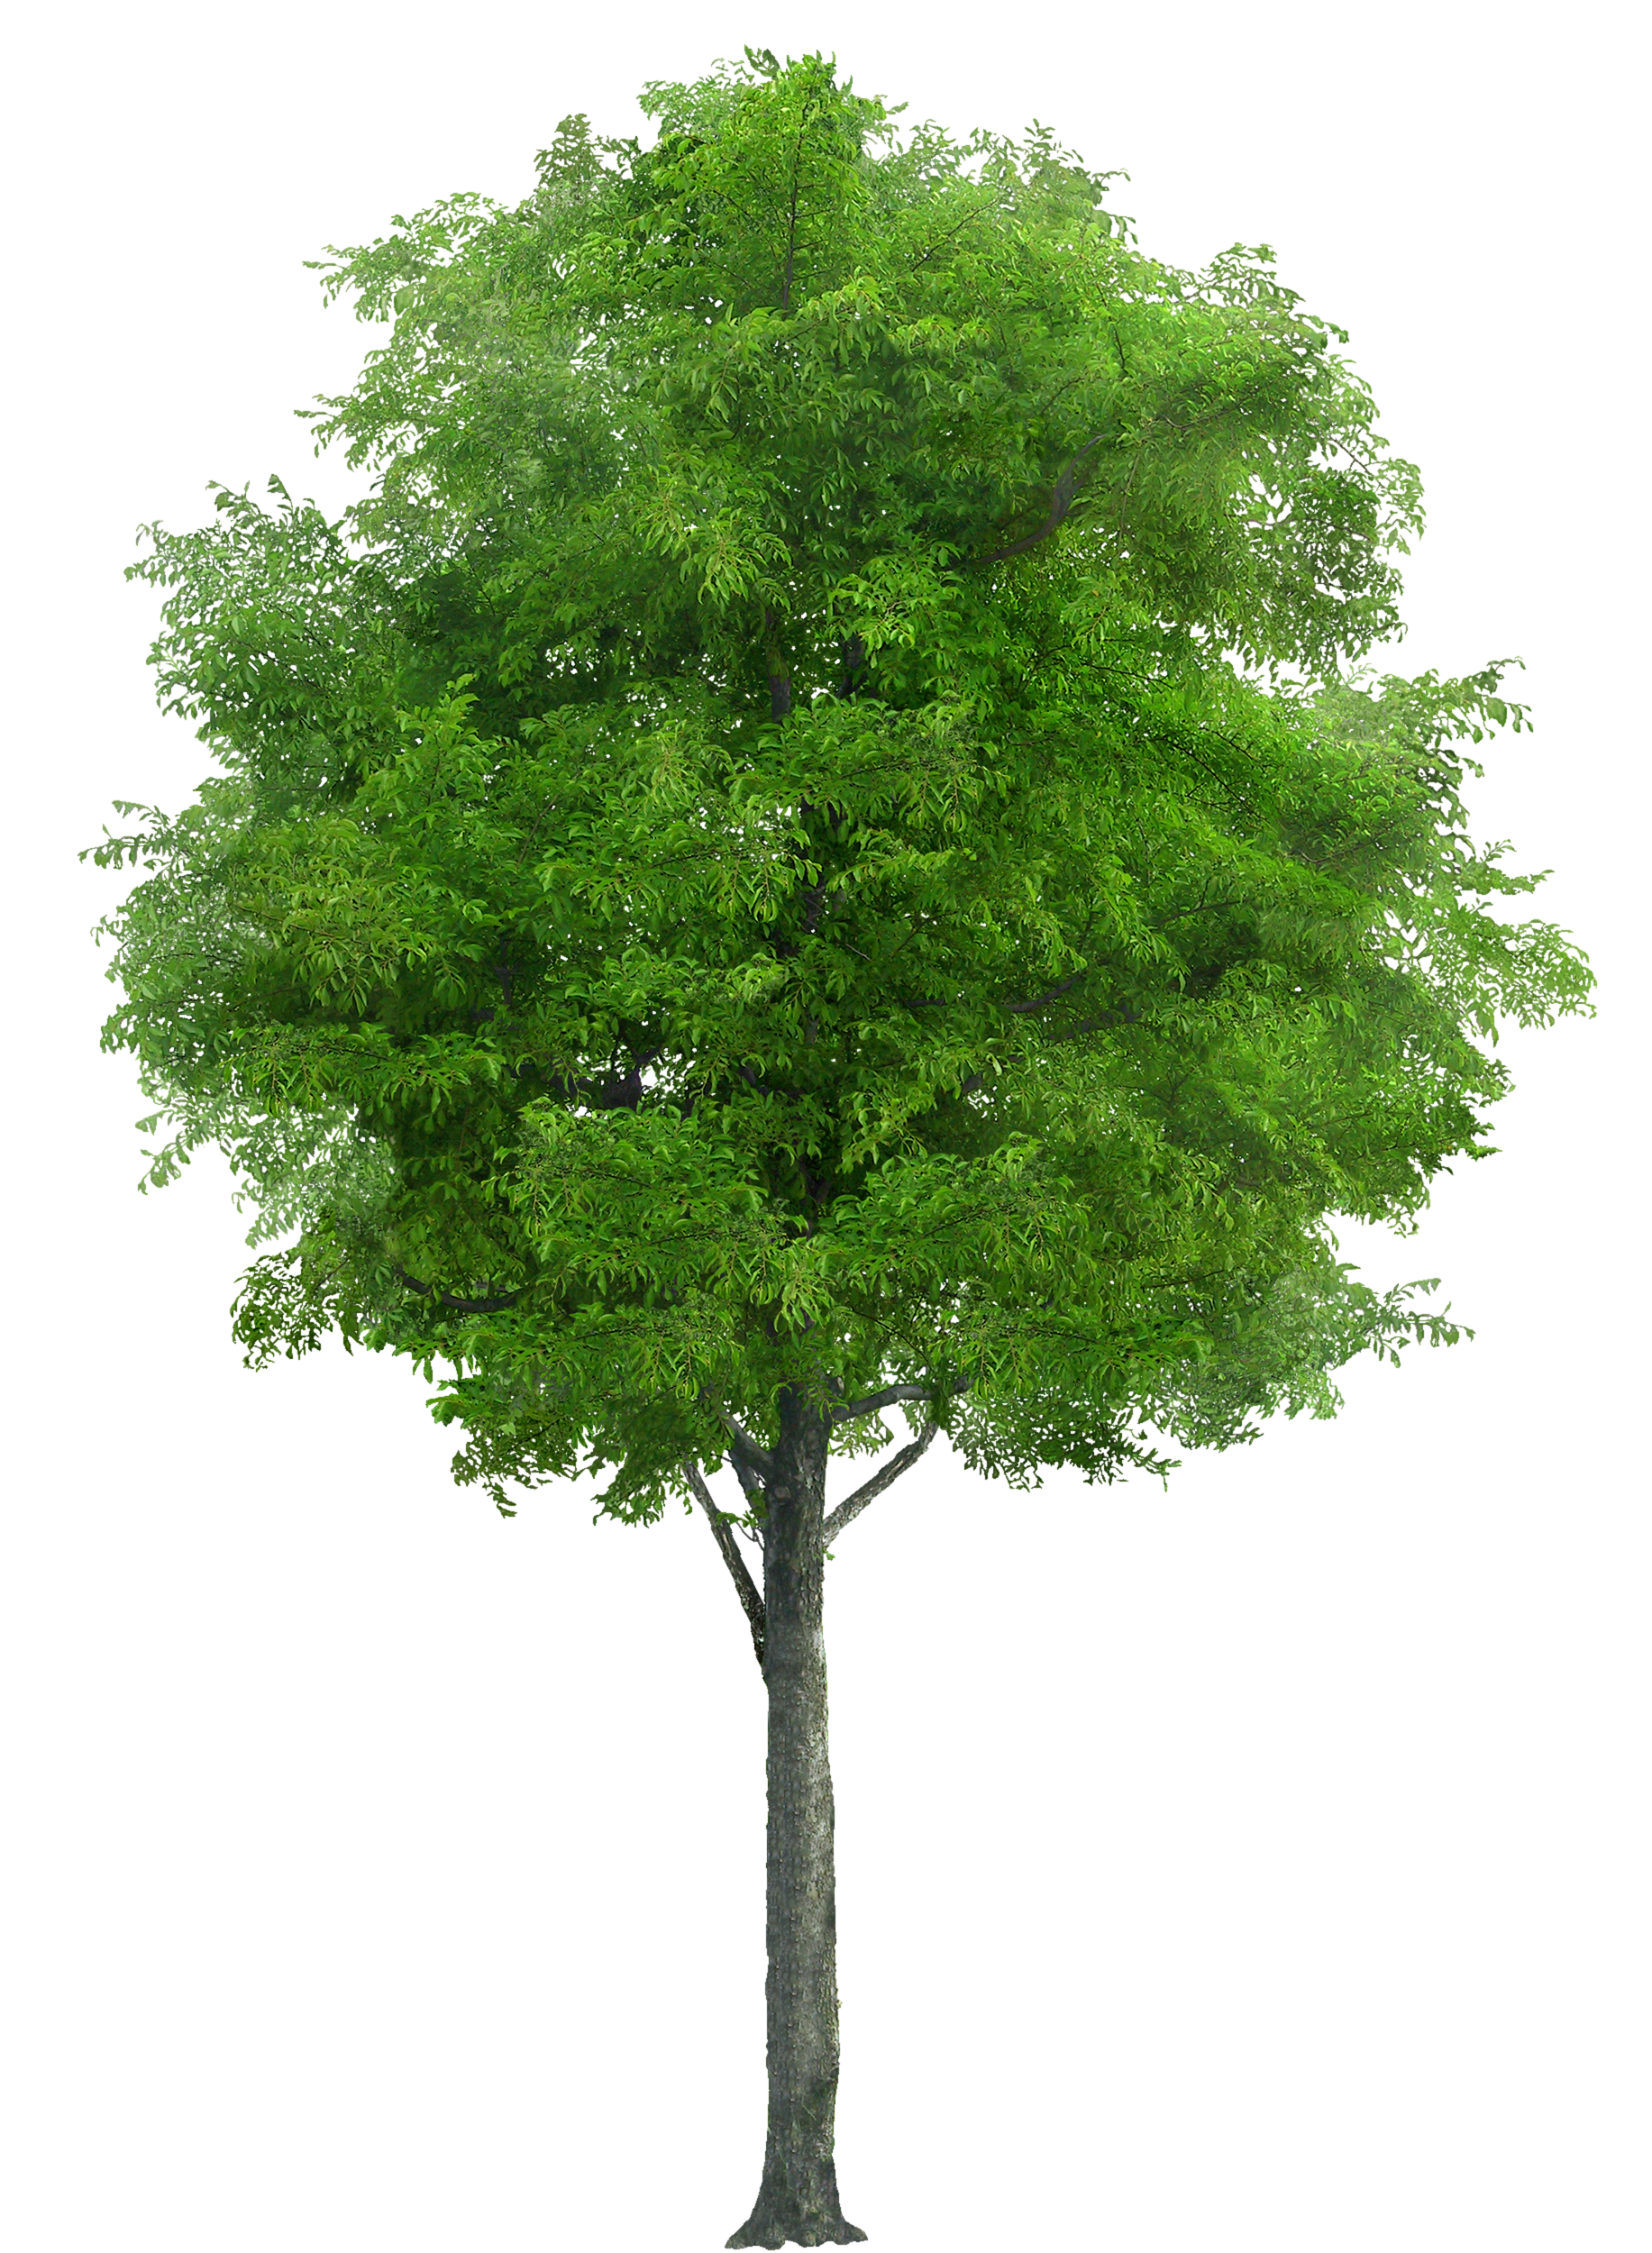 Tree clipart watercolor. Png image landscape draw